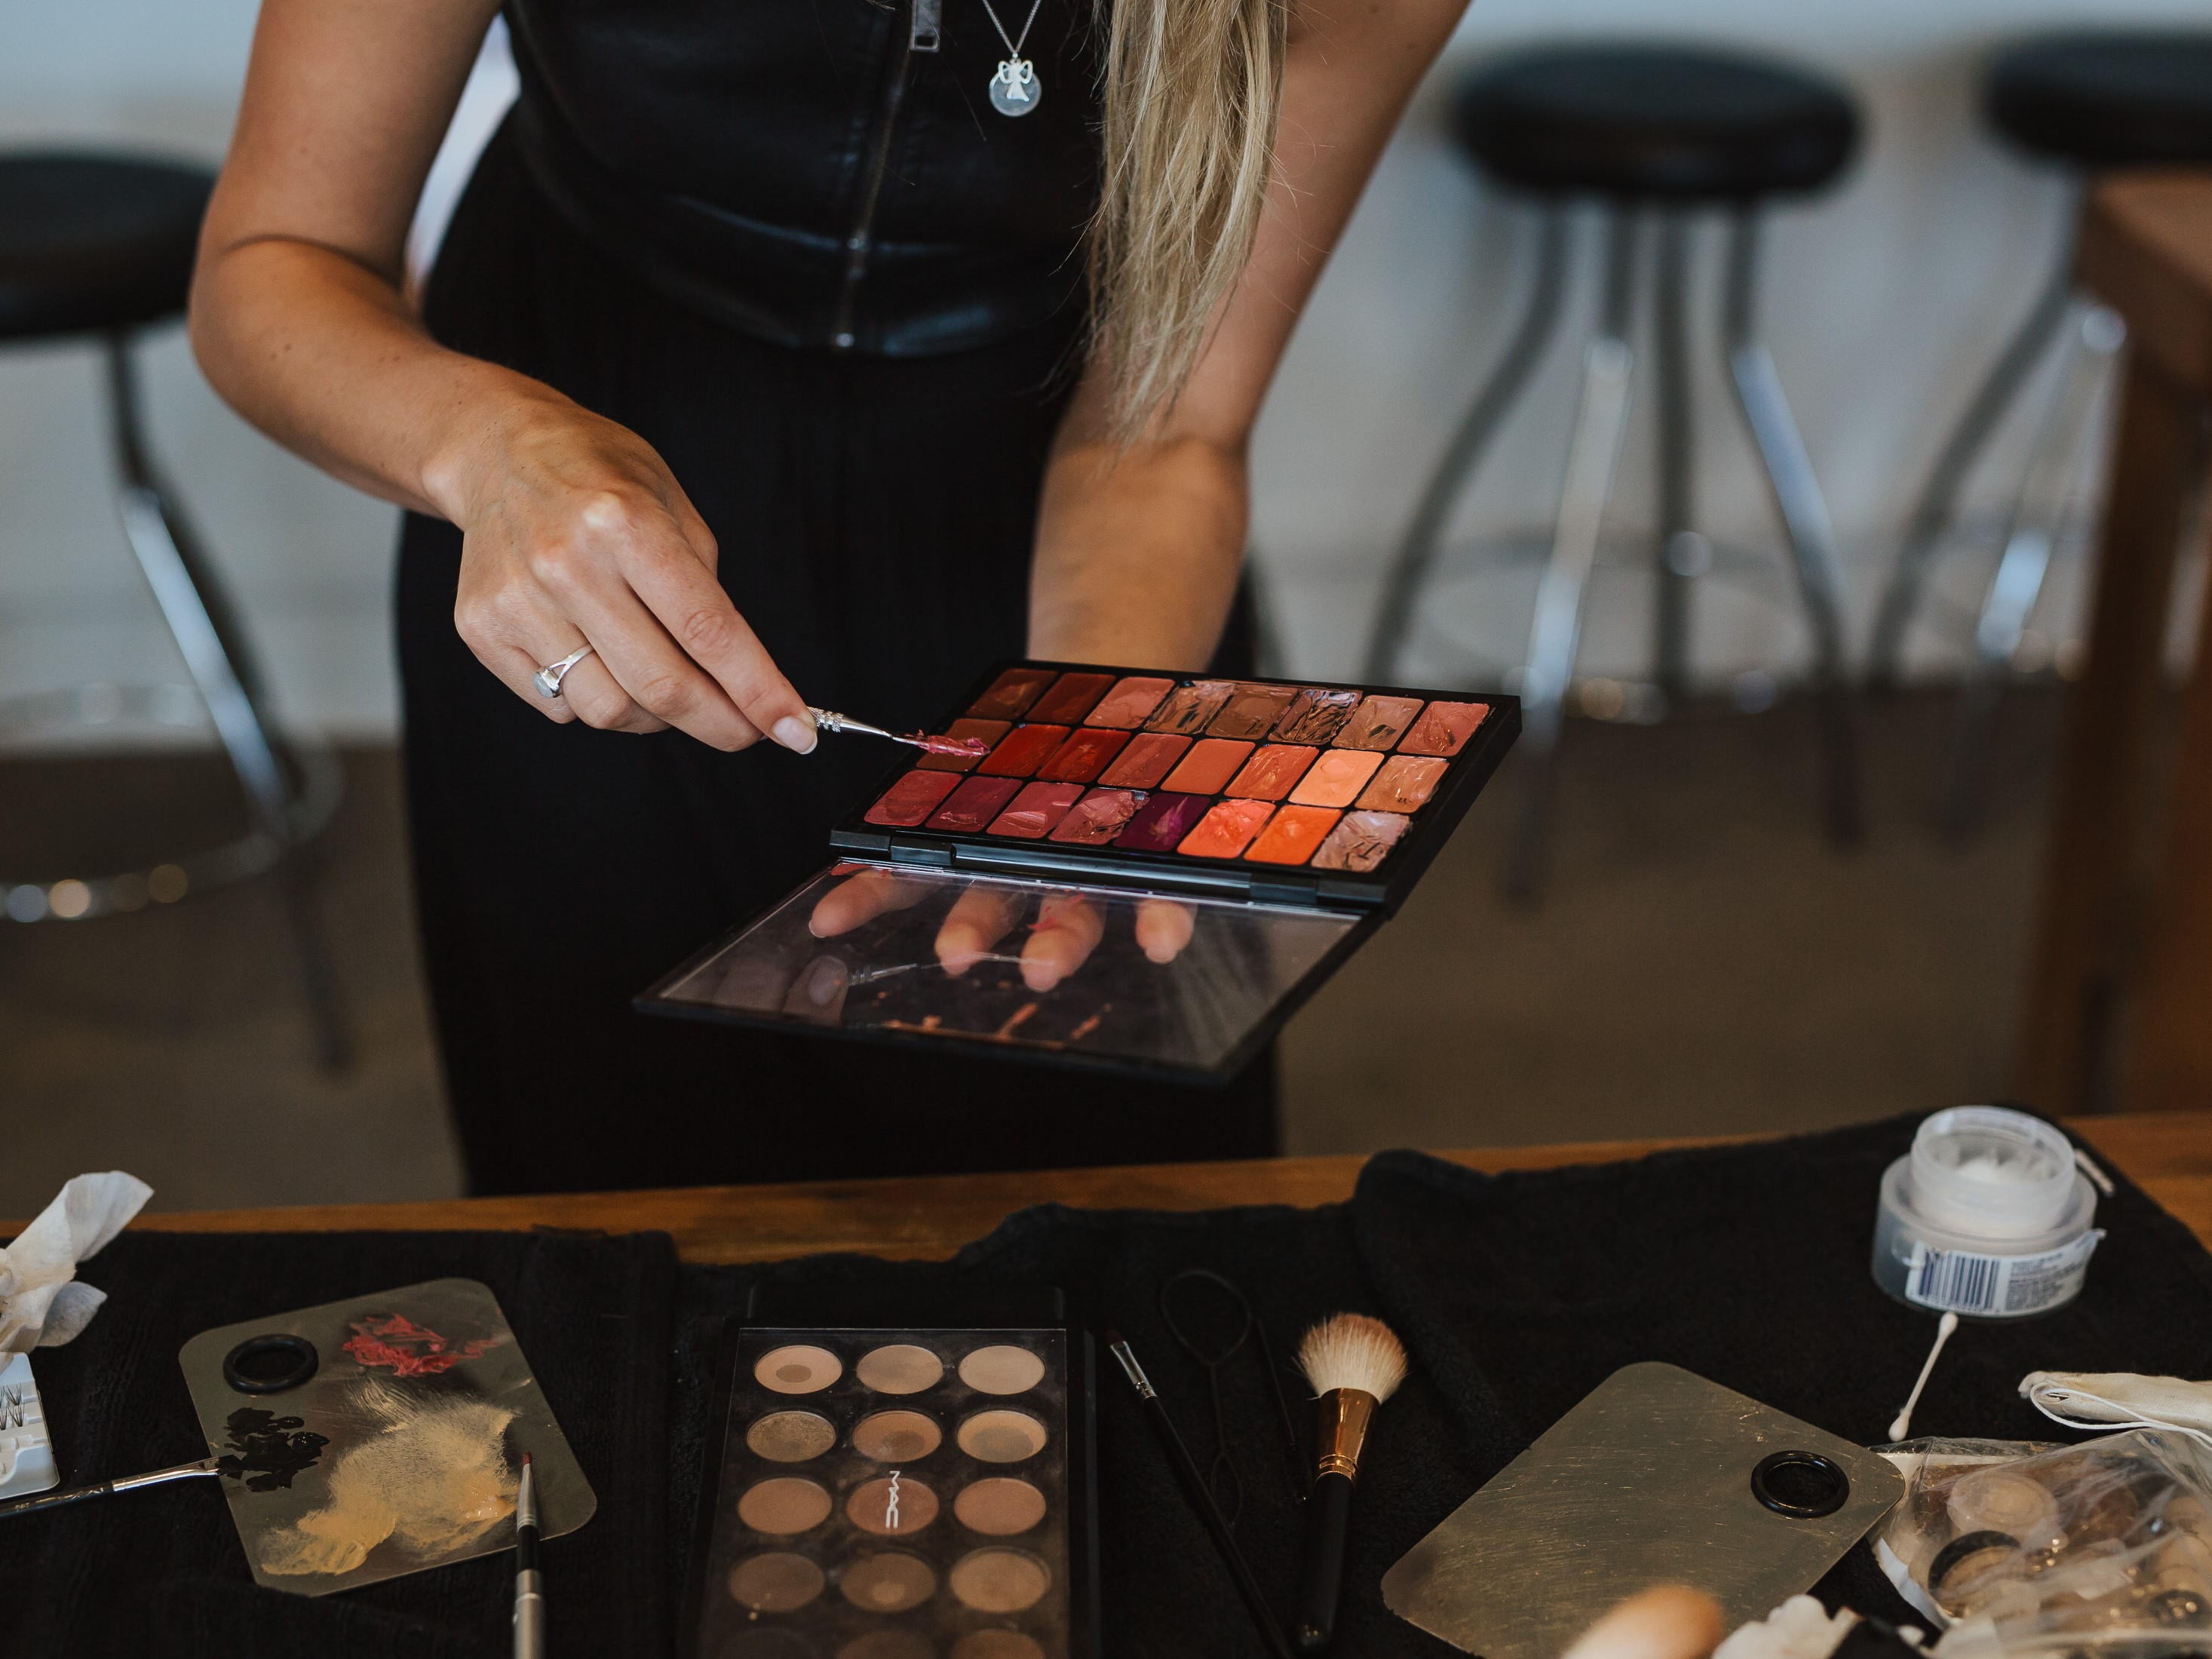 Makeup artist 'Sita Engling' showcasing her professional makeup station set up with makeup brushes, foundation, eyeshadow and lipstick palettes.